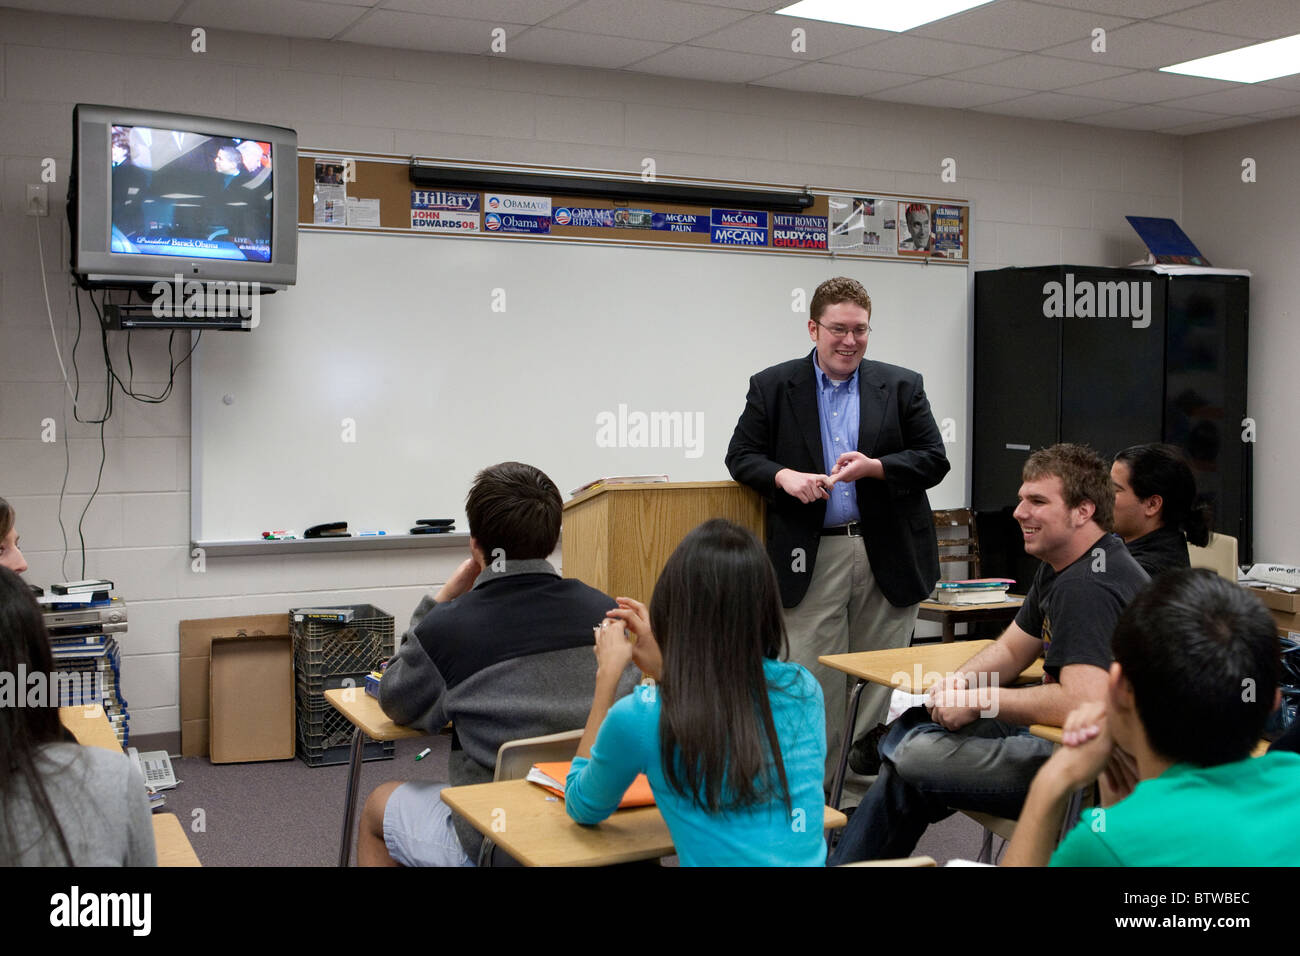 Male and female students watch Barack Obama's inauguration on TV during class at a Midland, Texas, high school - Stock Image